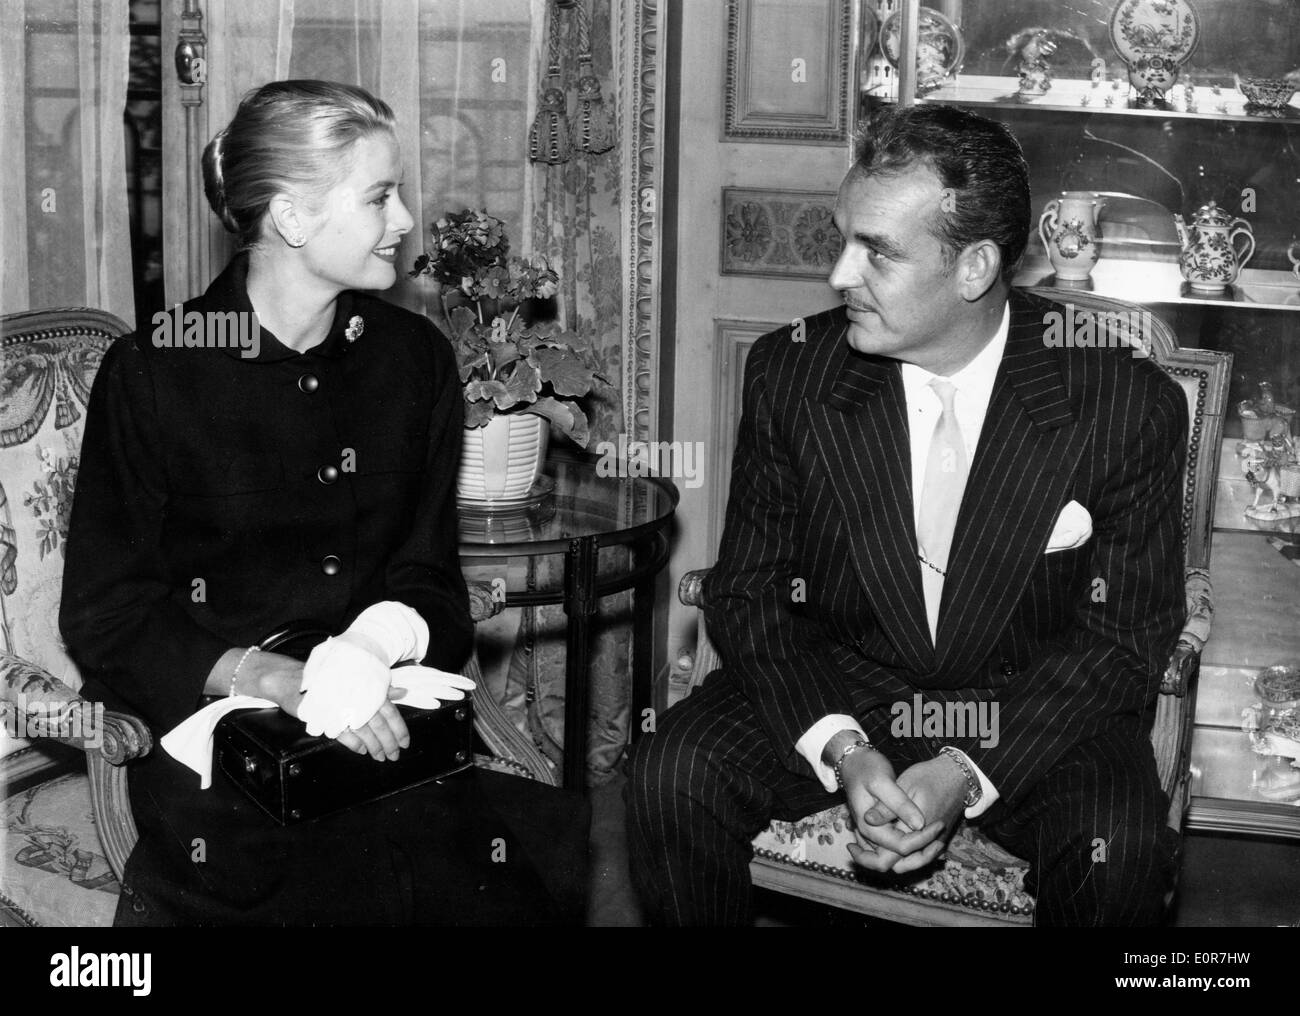 Prince Rainier talking to his wife Grace Kelly - Stock Image